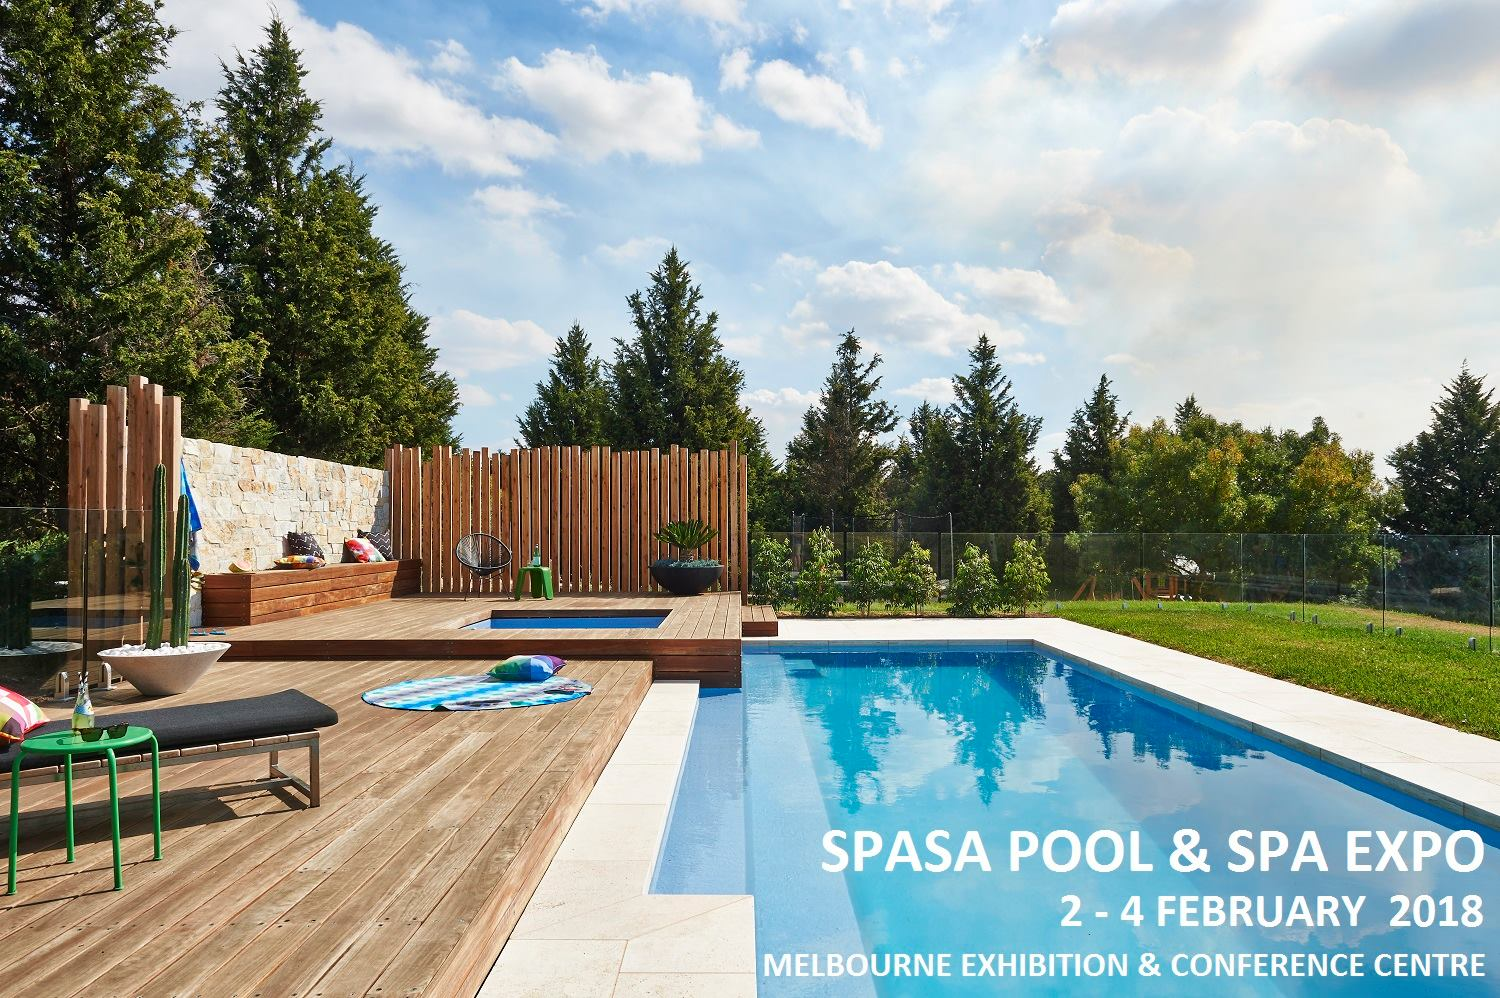 Spasa pool spa expo 2018 melbourne pool and outdoor design for Pool expo show